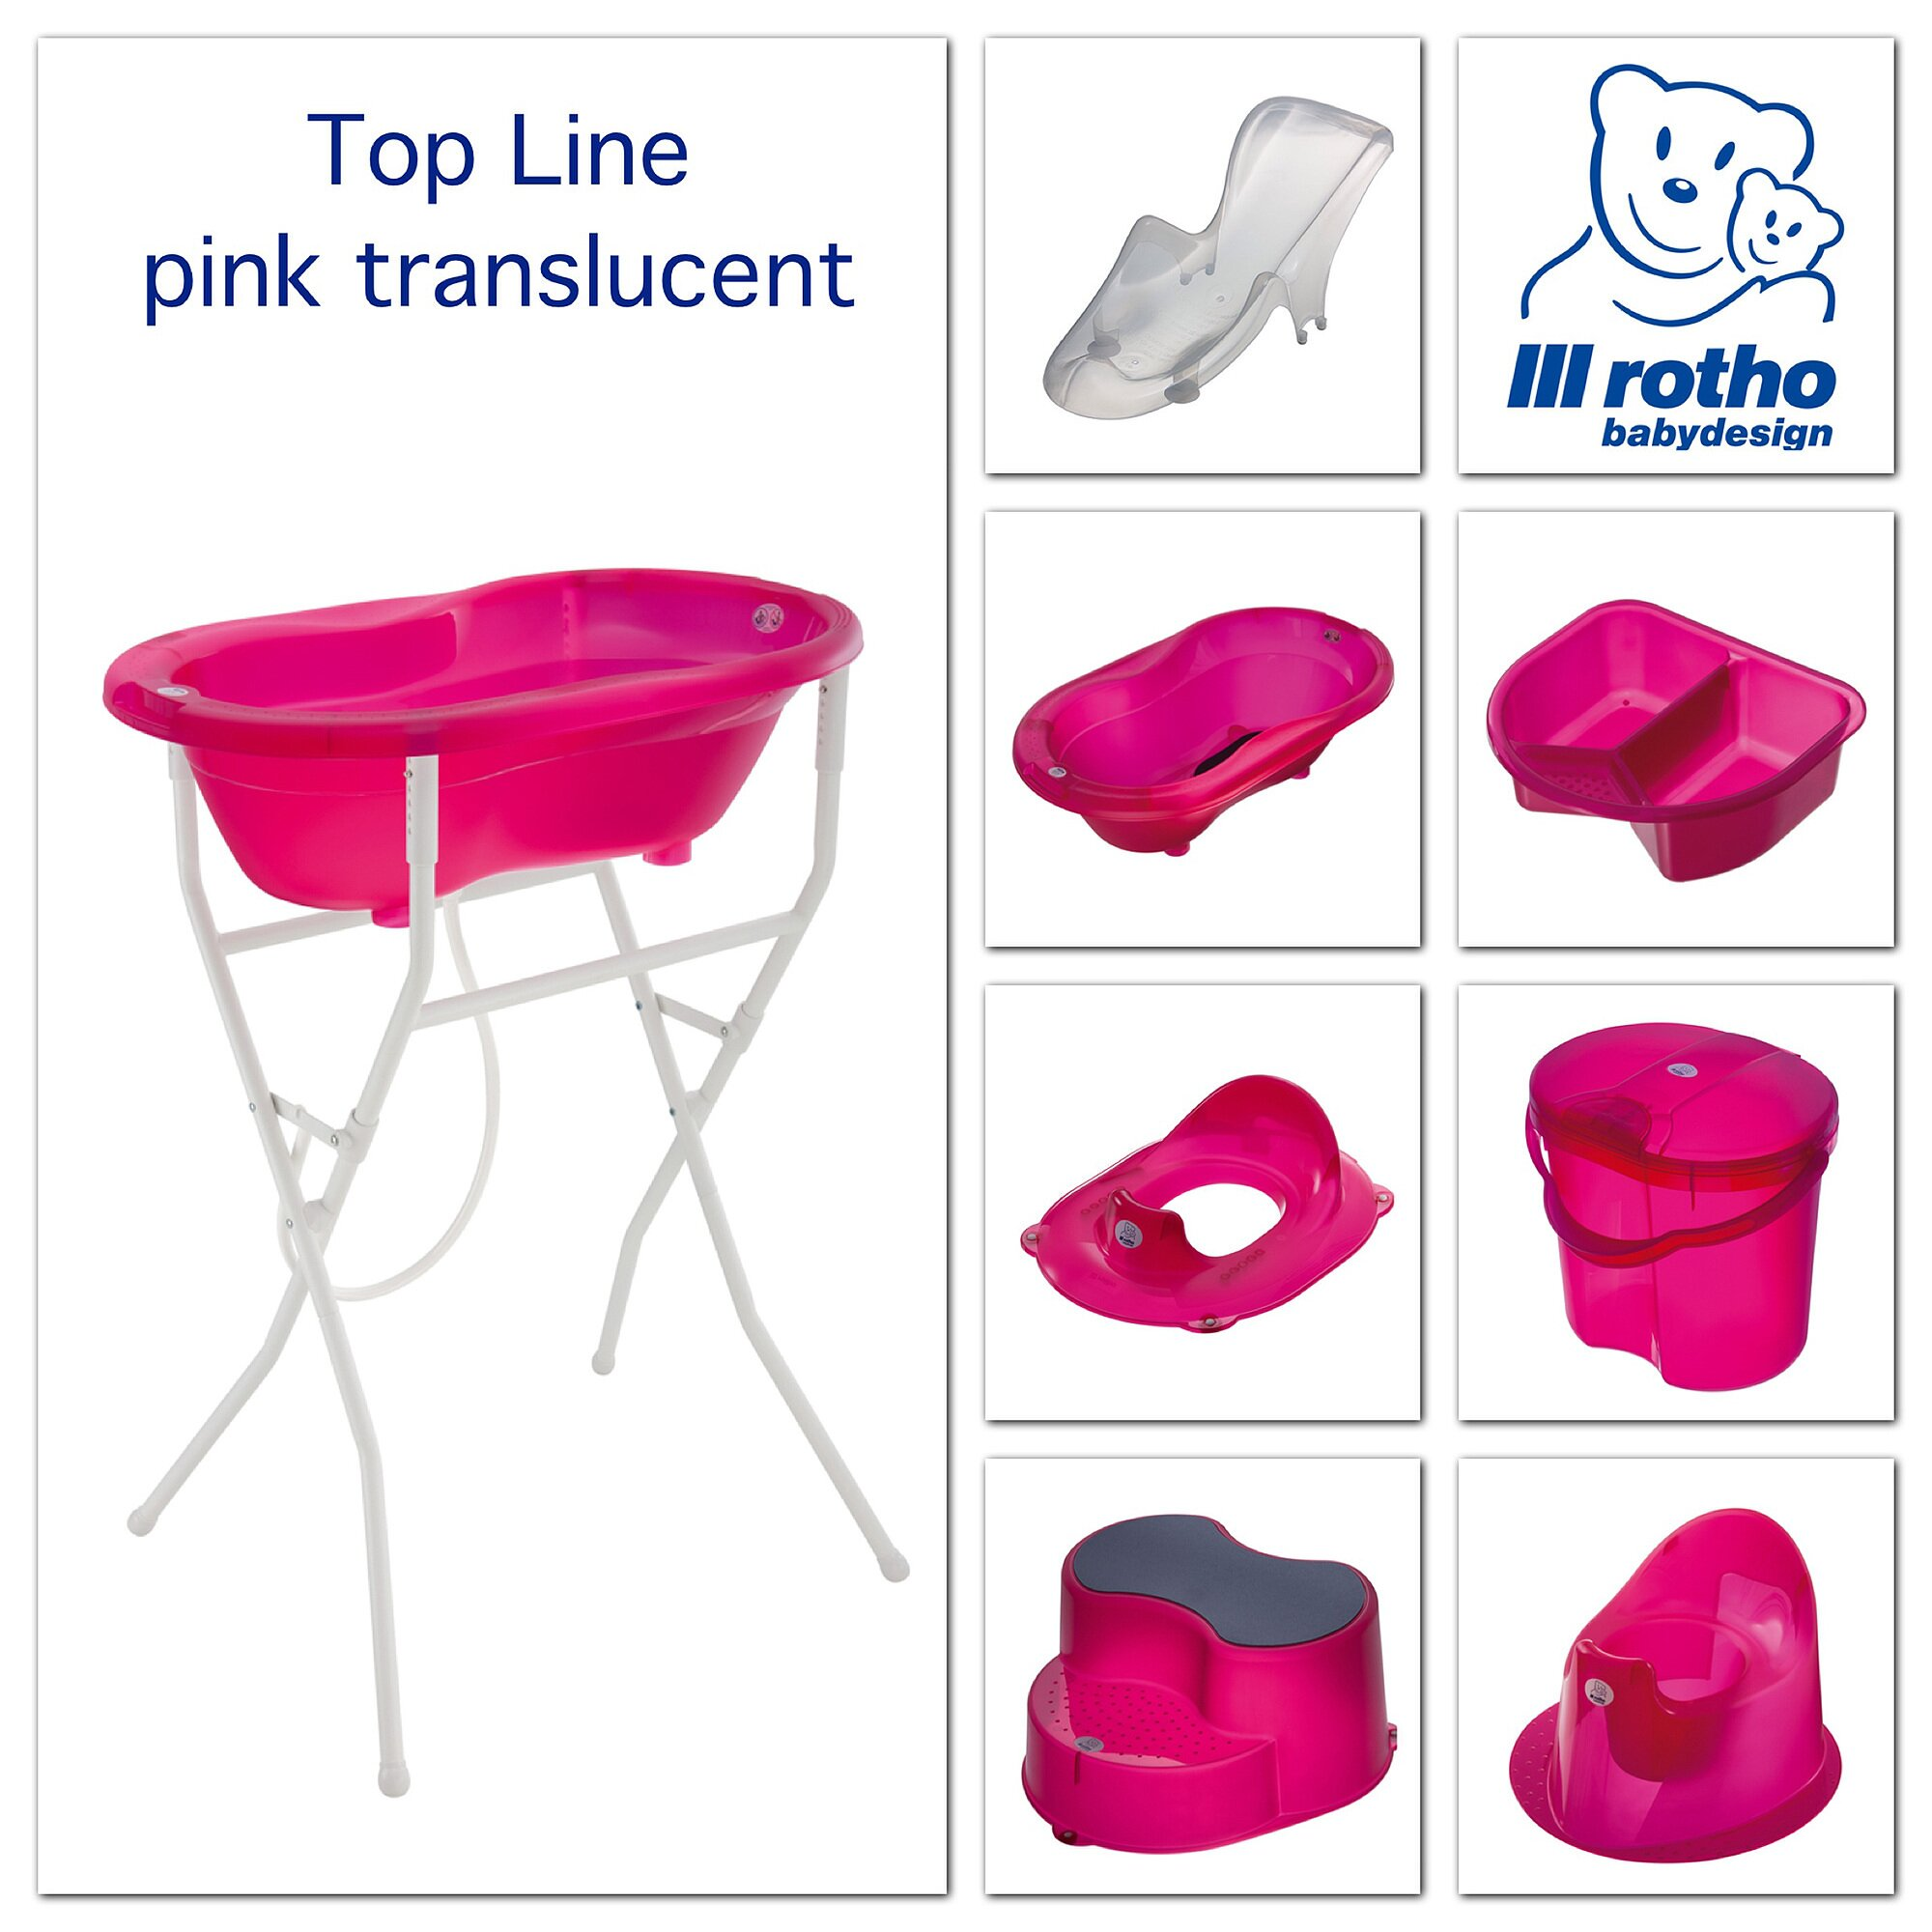 rotho-babydesign-top-wc-sitz-translucent